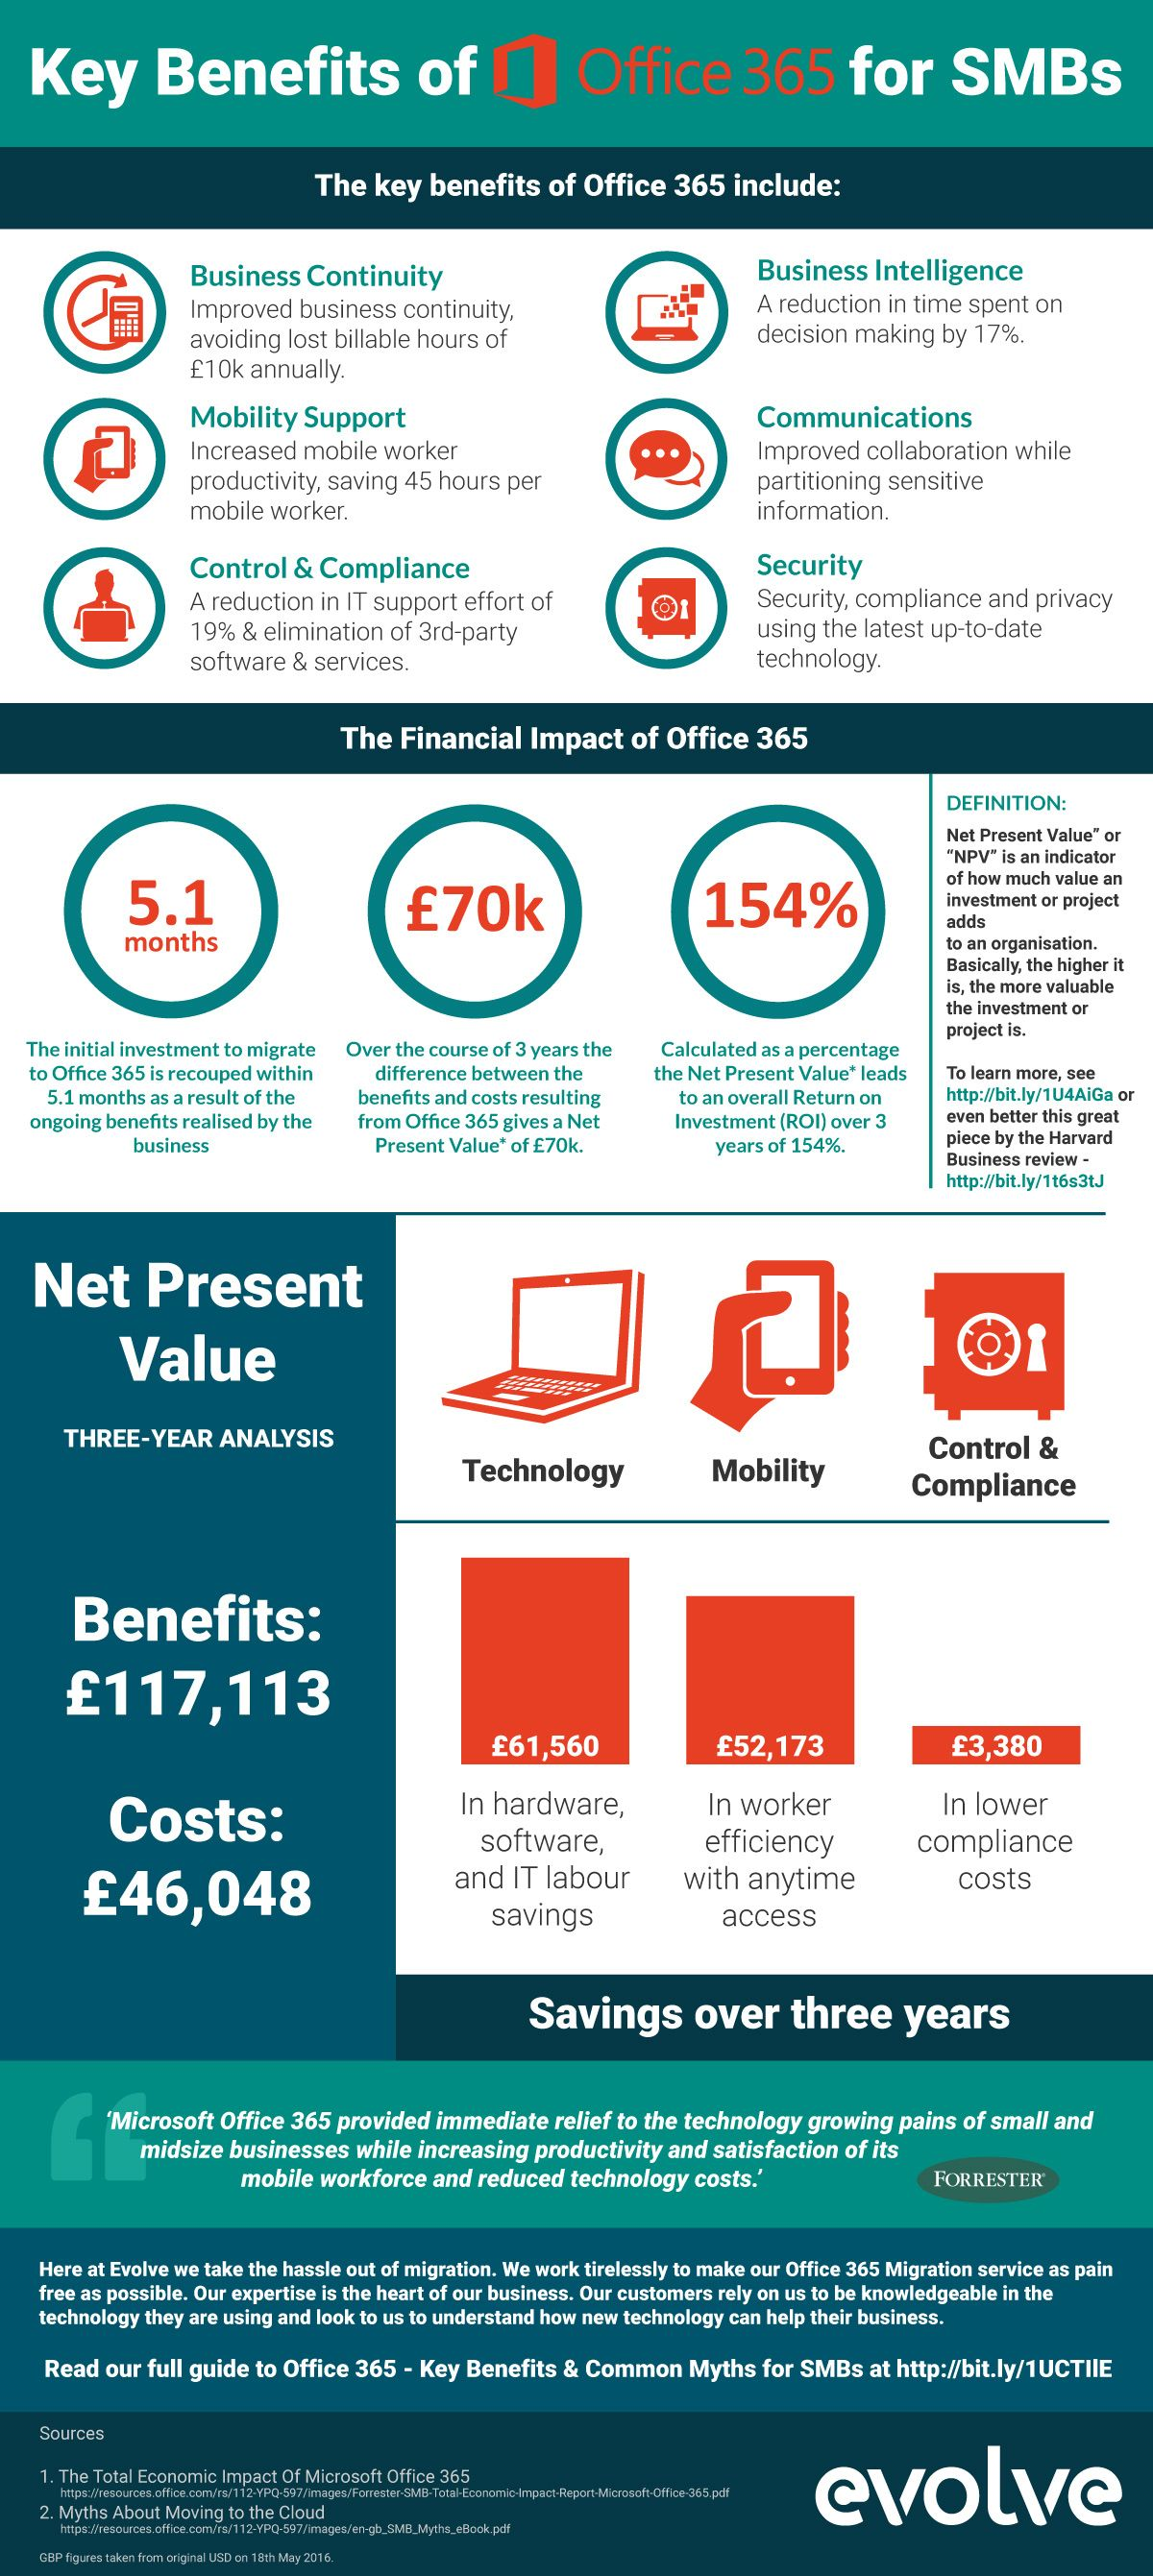 Key Benefits Of Office 365 Infographic Evolve Computers Office 365 Infographic Office 365 Business Continuity